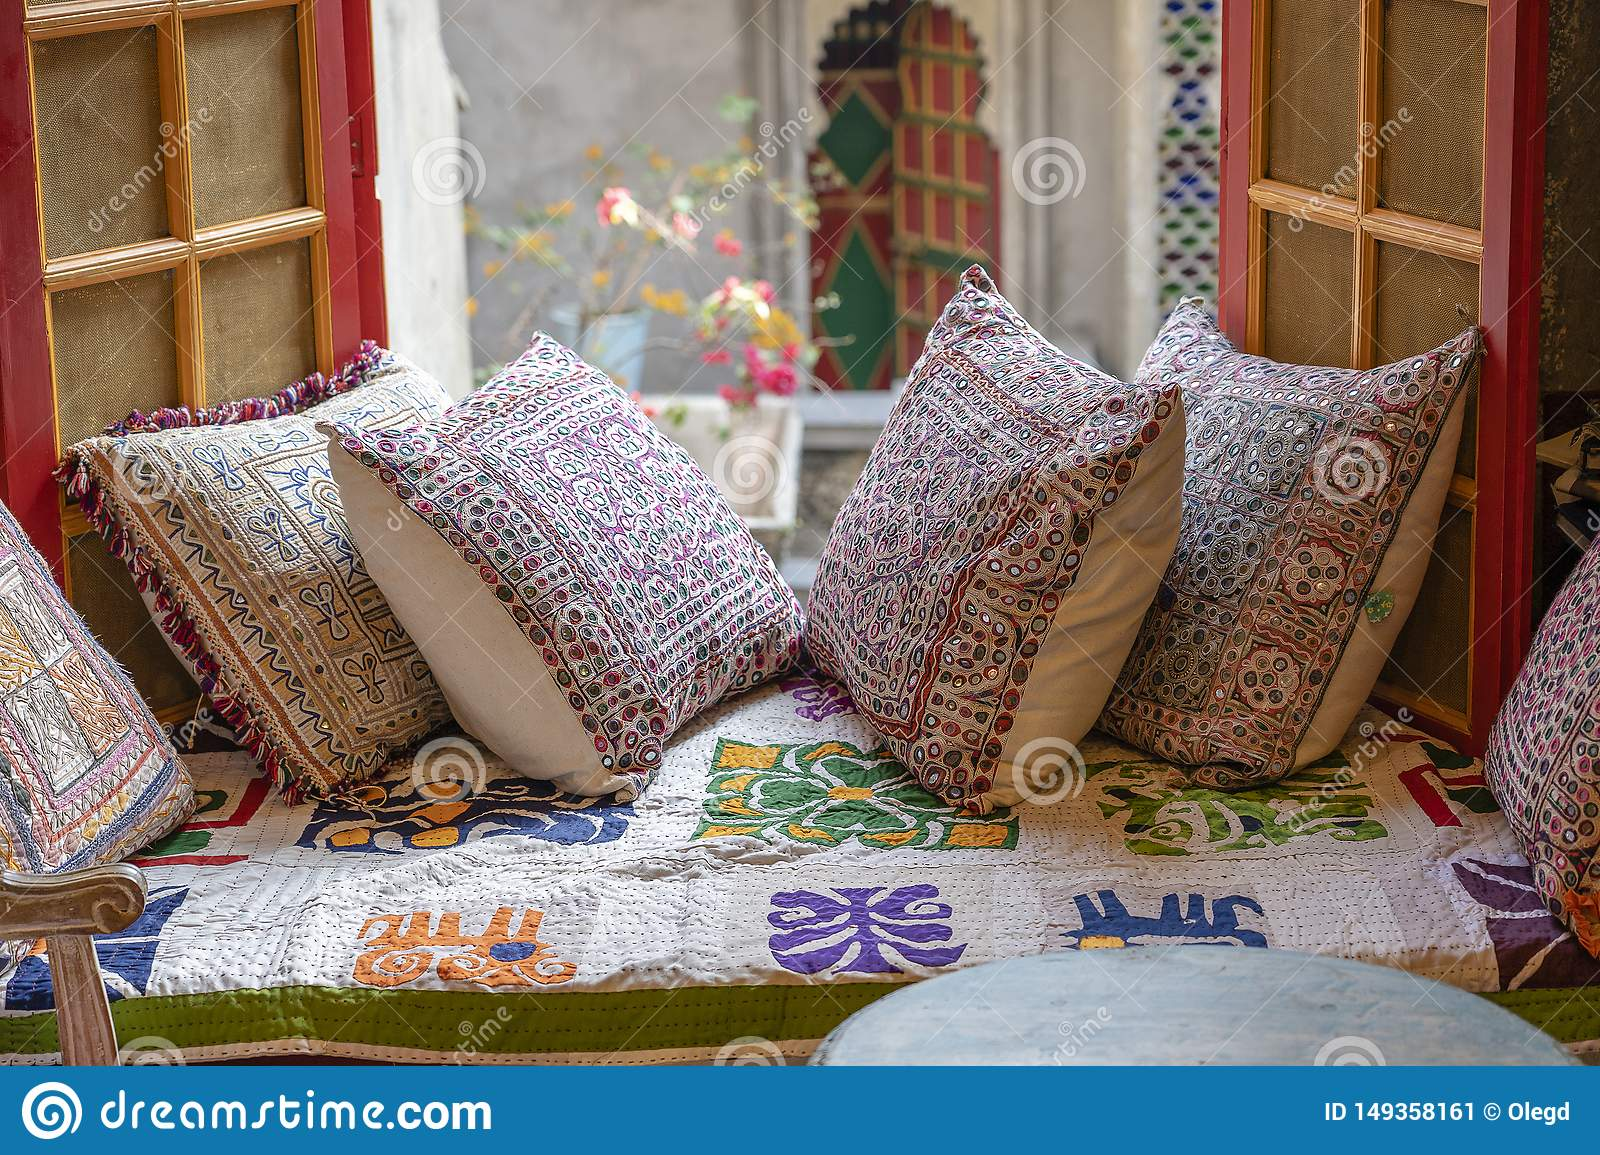 A Cozy Seating Area Near The Window With Colorful Pillows ... Rajasthan Home Design View on ahmedabad homes, south india homes, assam homes, delhi homes, south asia homes, bangalore homes, juhu homes, north india homes, darjeeling homes,